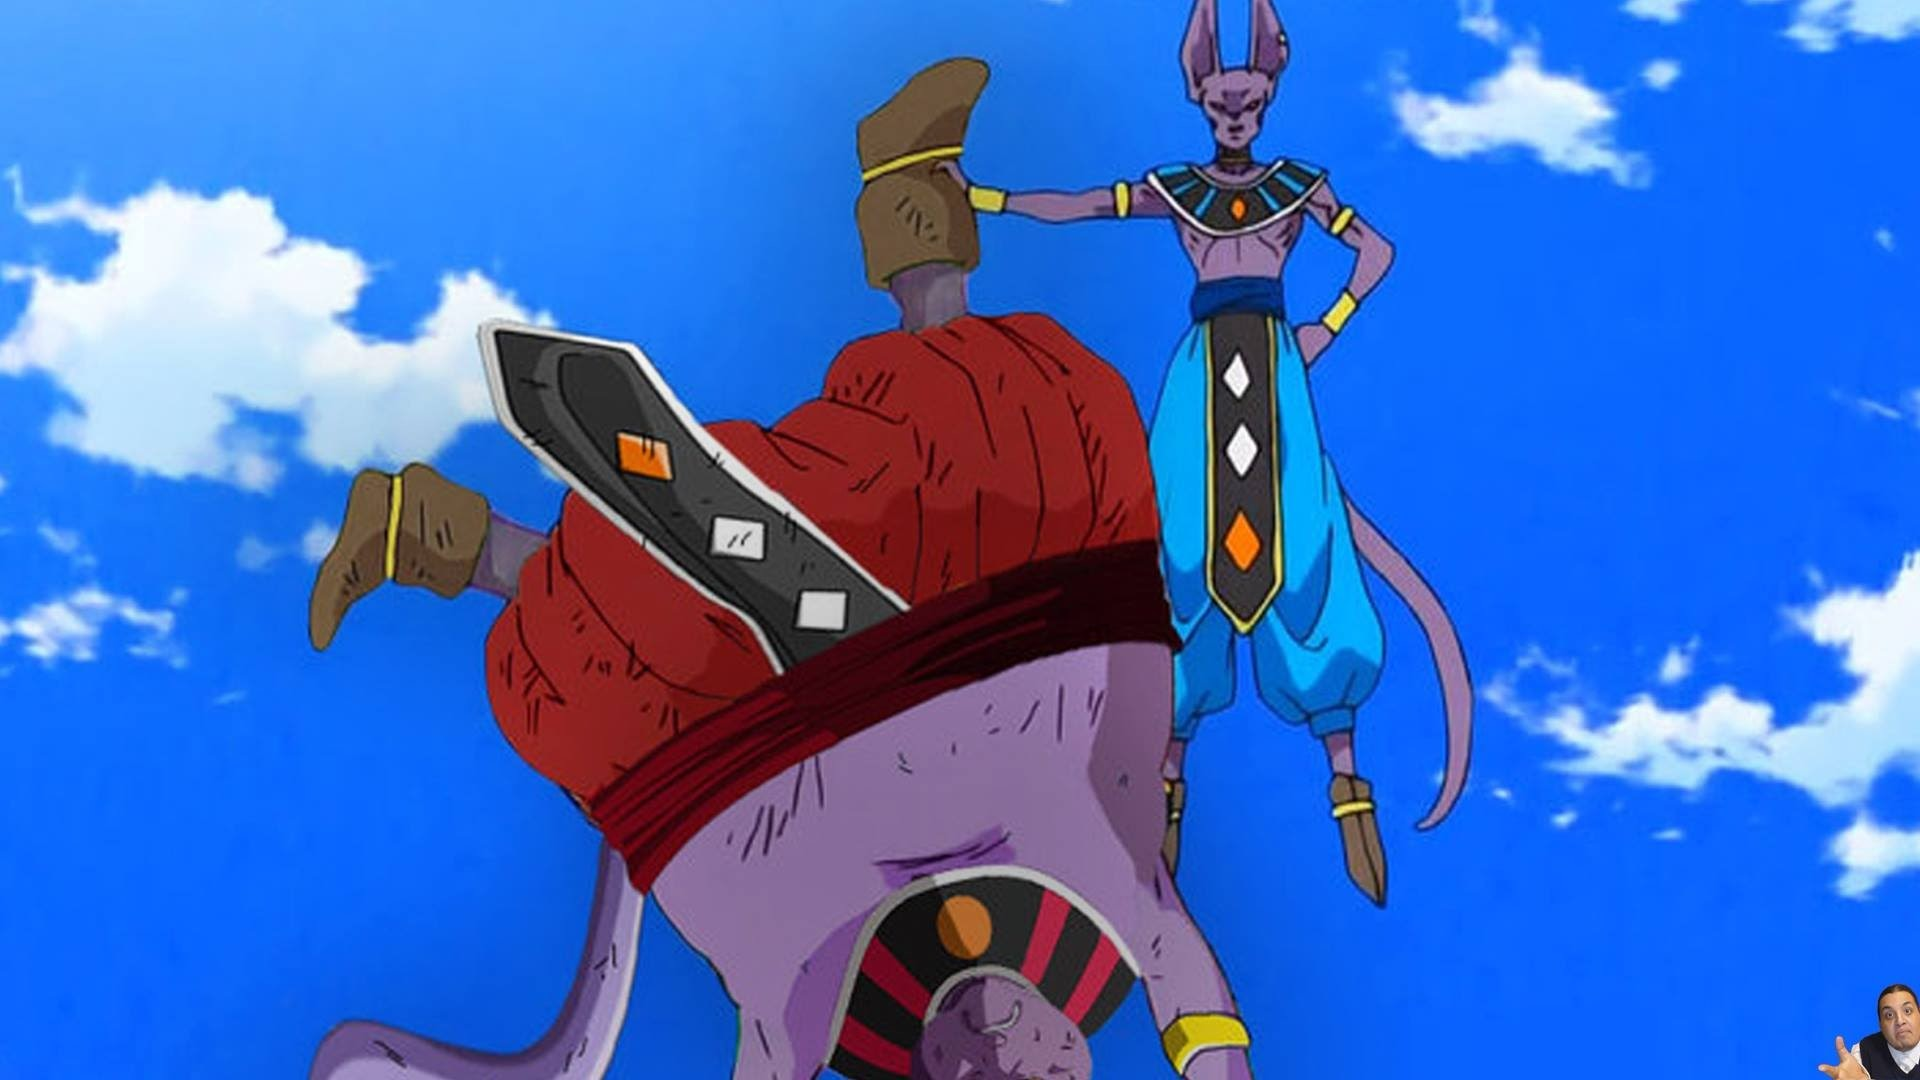 1920x1080 Dragon Ball Super: Beerus Vs Champa, Goku OWNS Gohan & Universe 7  Tournament Fighters: Ch6 Spoilers - YouTube